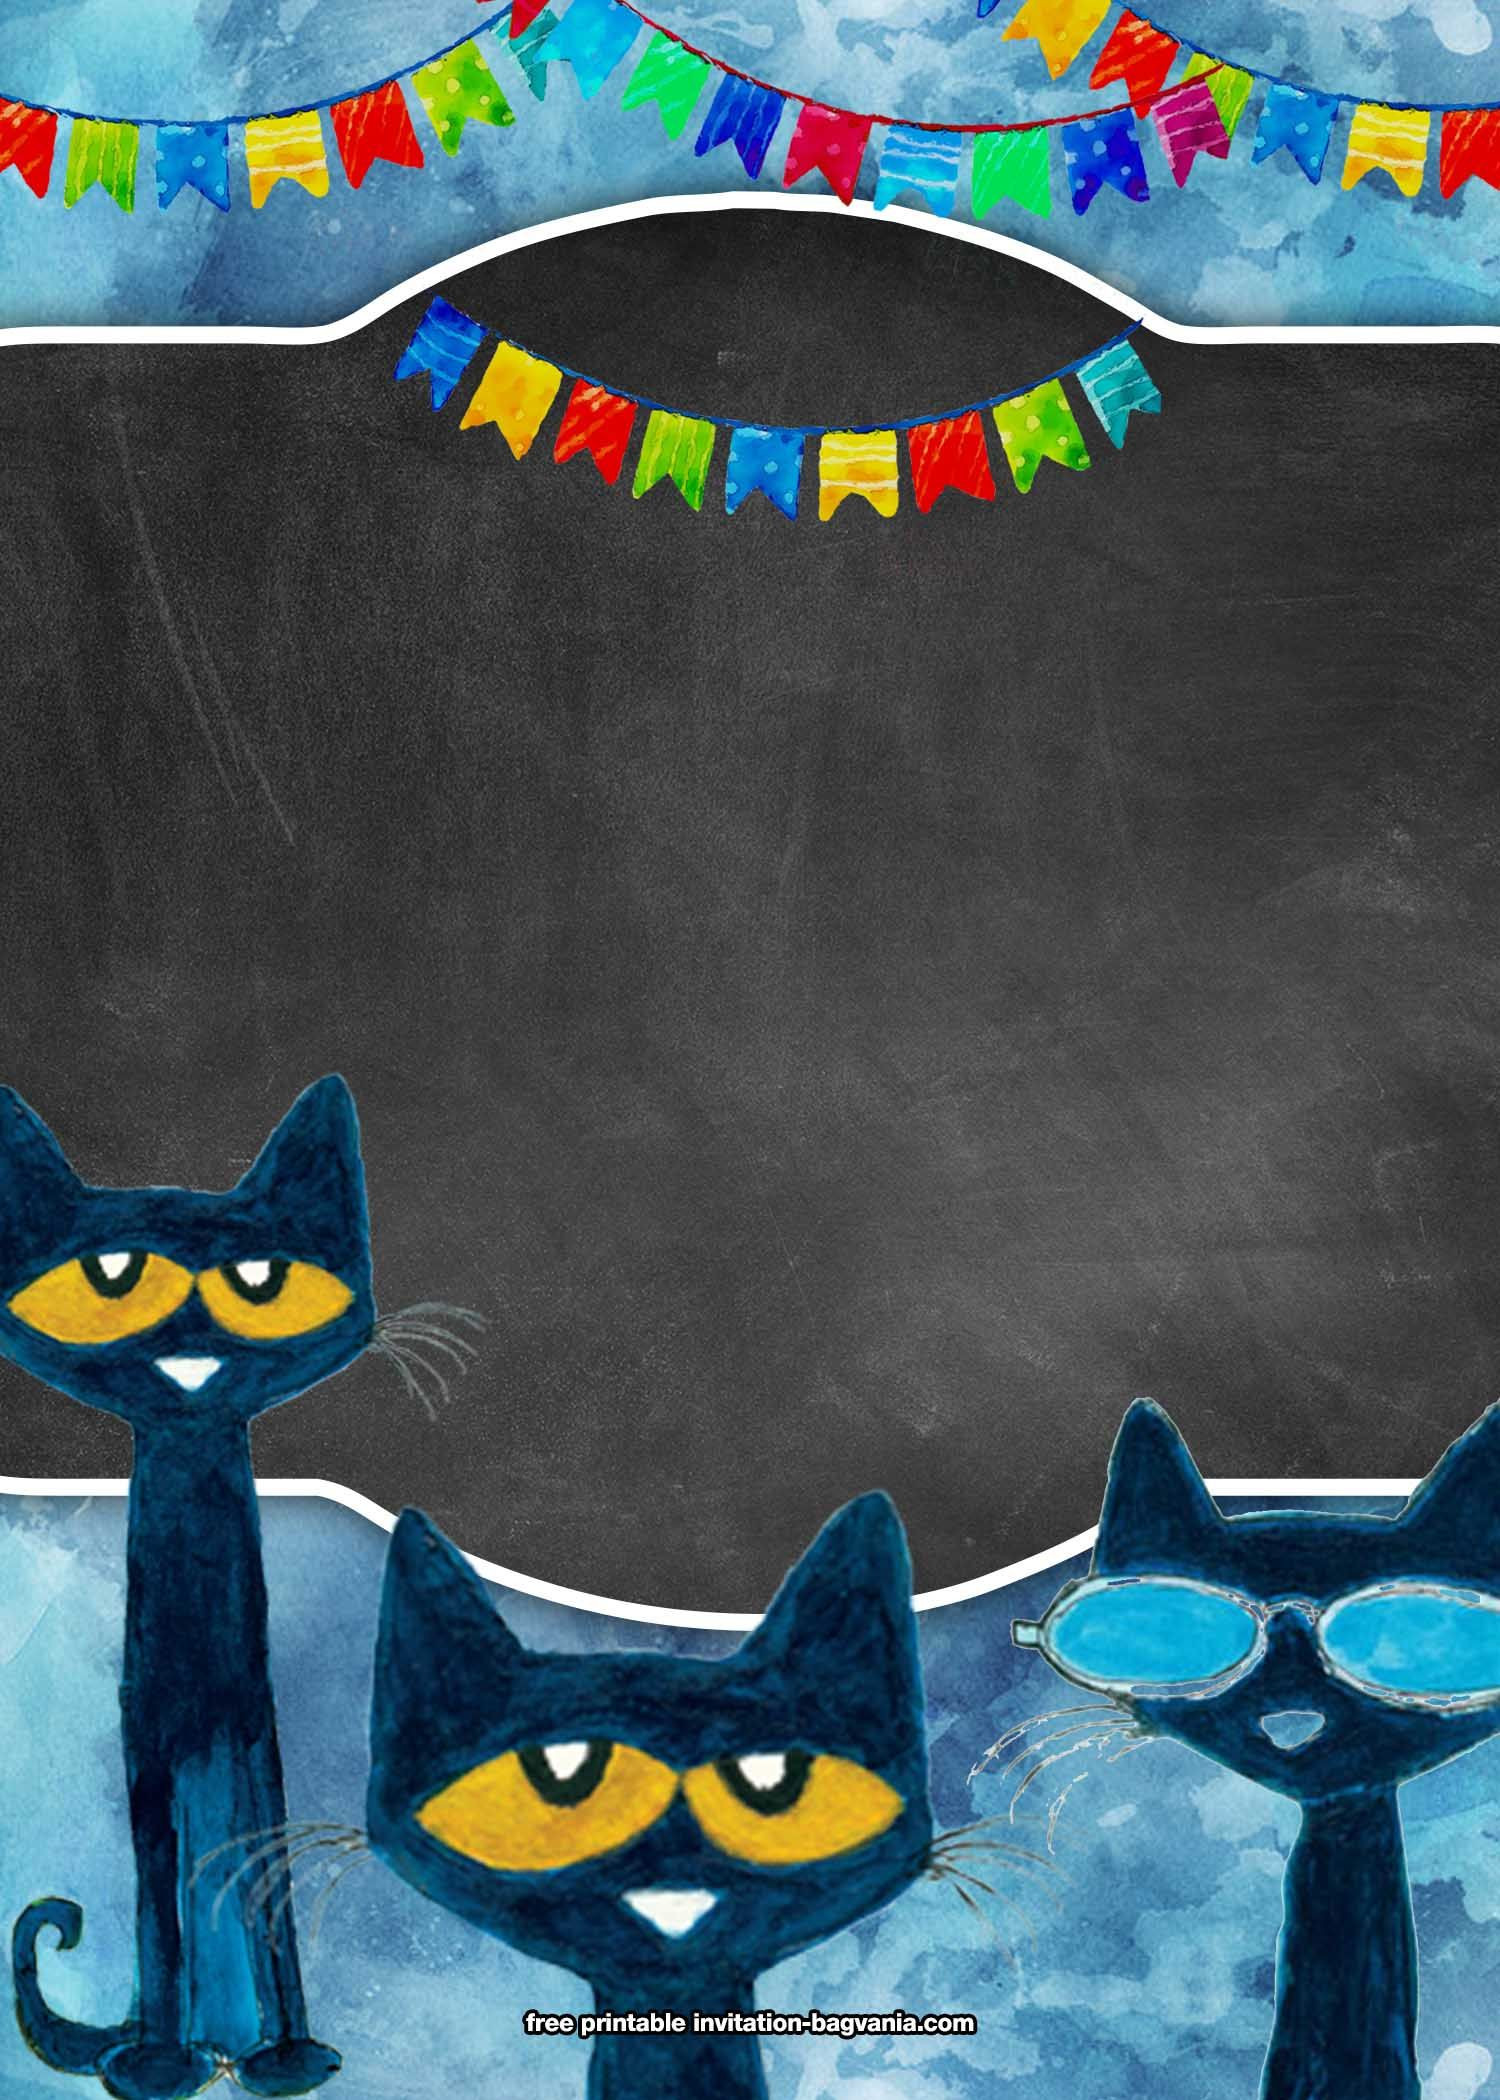 Pete the Cat Template